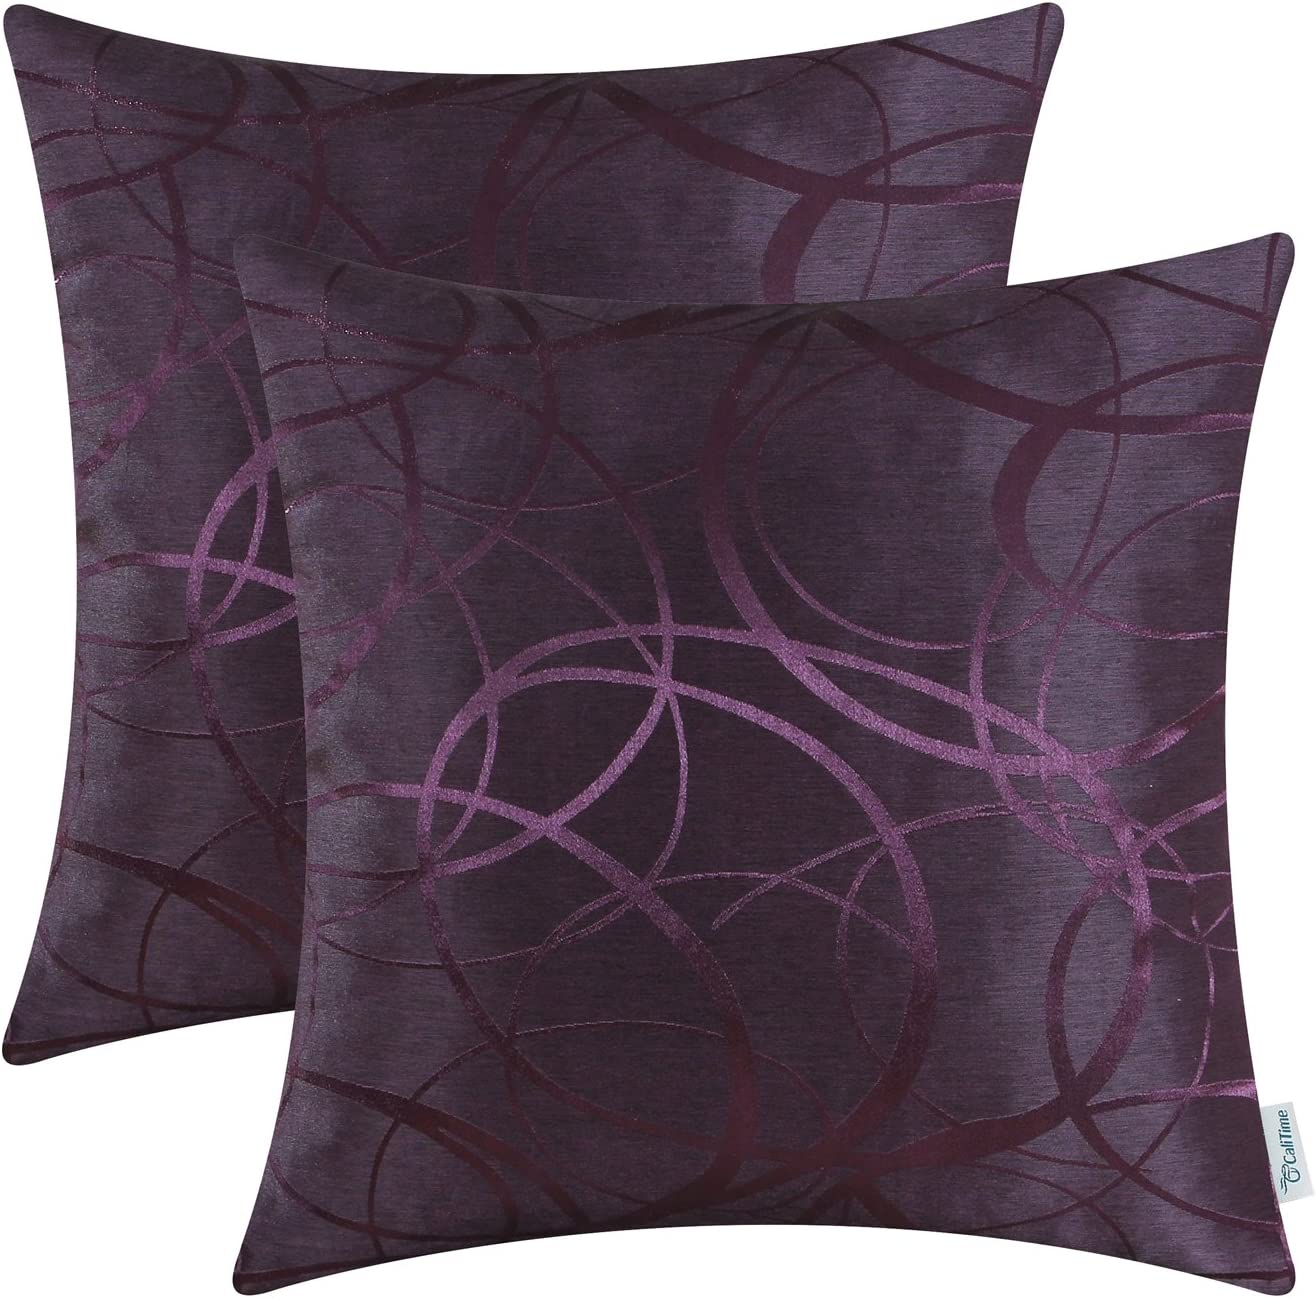 CaliTime Pack of 2 Cushion Covers Throw Pillow Cases Shells for Couch Sofa Home Decor Modern Shining & Dull Contrast Circles Rings Geometric 18 X 18 Inches Deep Purple